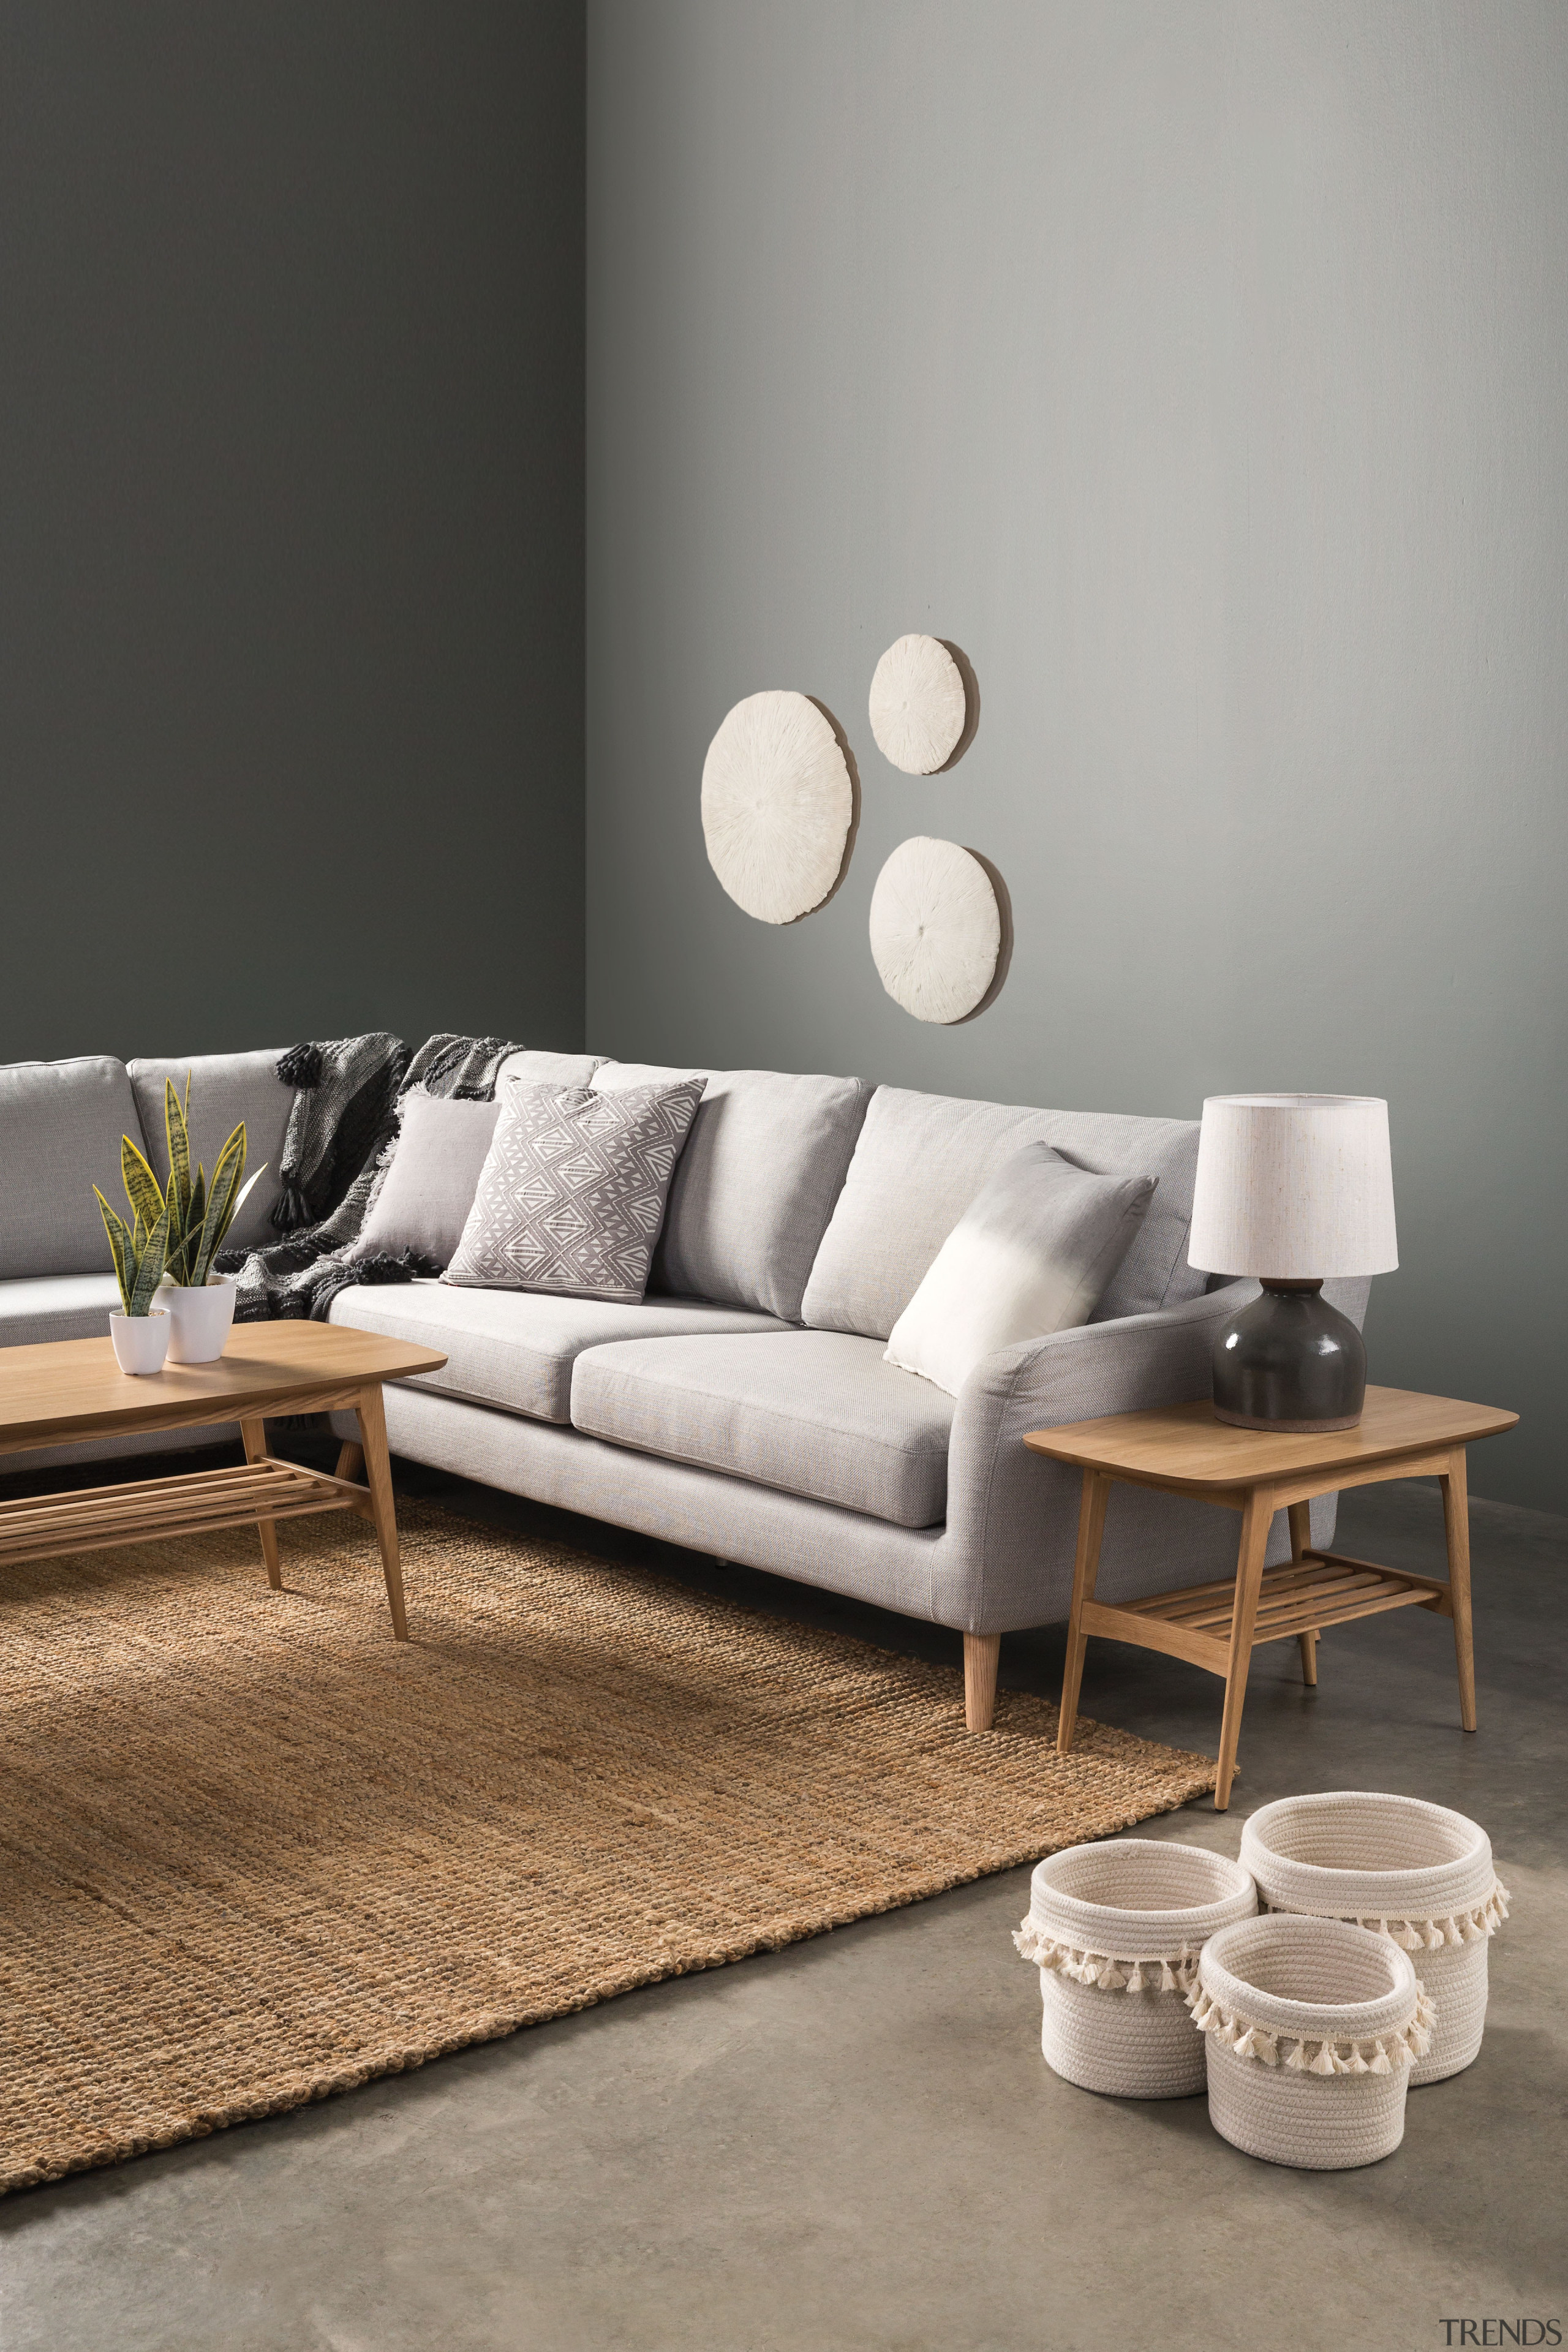 Hampton corner sofa by Nood - Getting the angle, chair, coffee table, couch, floor, flooring, furniture, interior design, living room, loveseat, sofa bed, table, gray